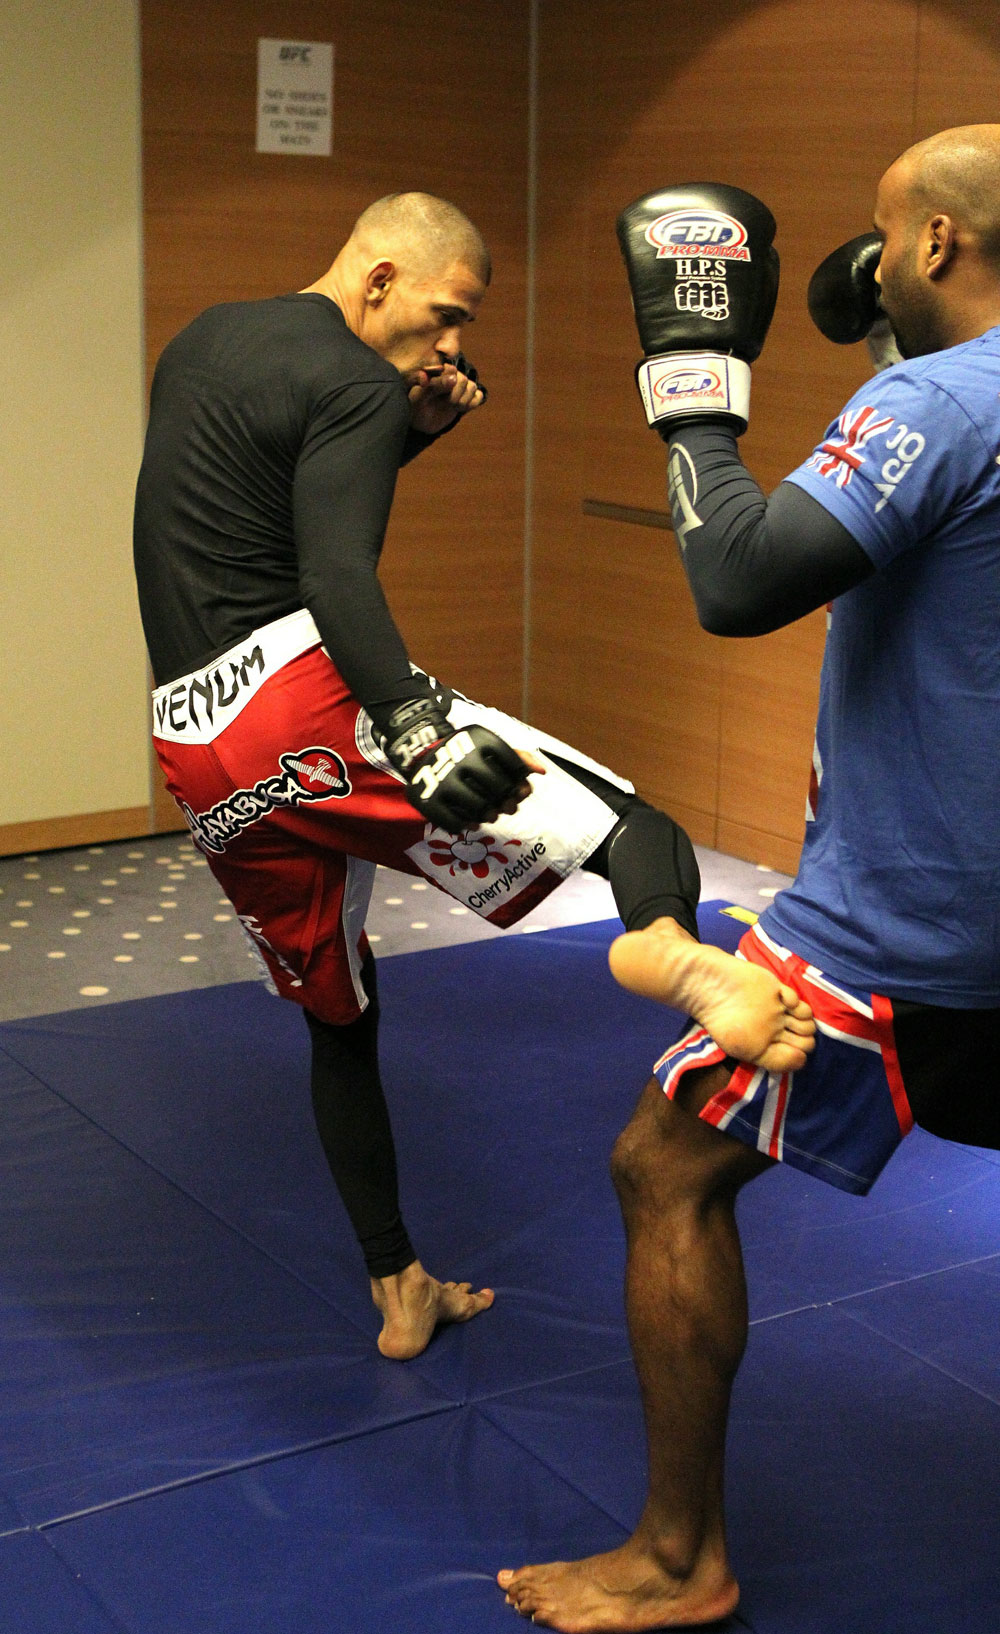 Andre Winner works out with trainer Dean Amasinger at the UFC 122 open workouts at the Hilton Hotel on November 10,  2010 in Dusseldorf, Germany.  (Photo by Josh Hedges/Zuffa LLC via Getty Images)